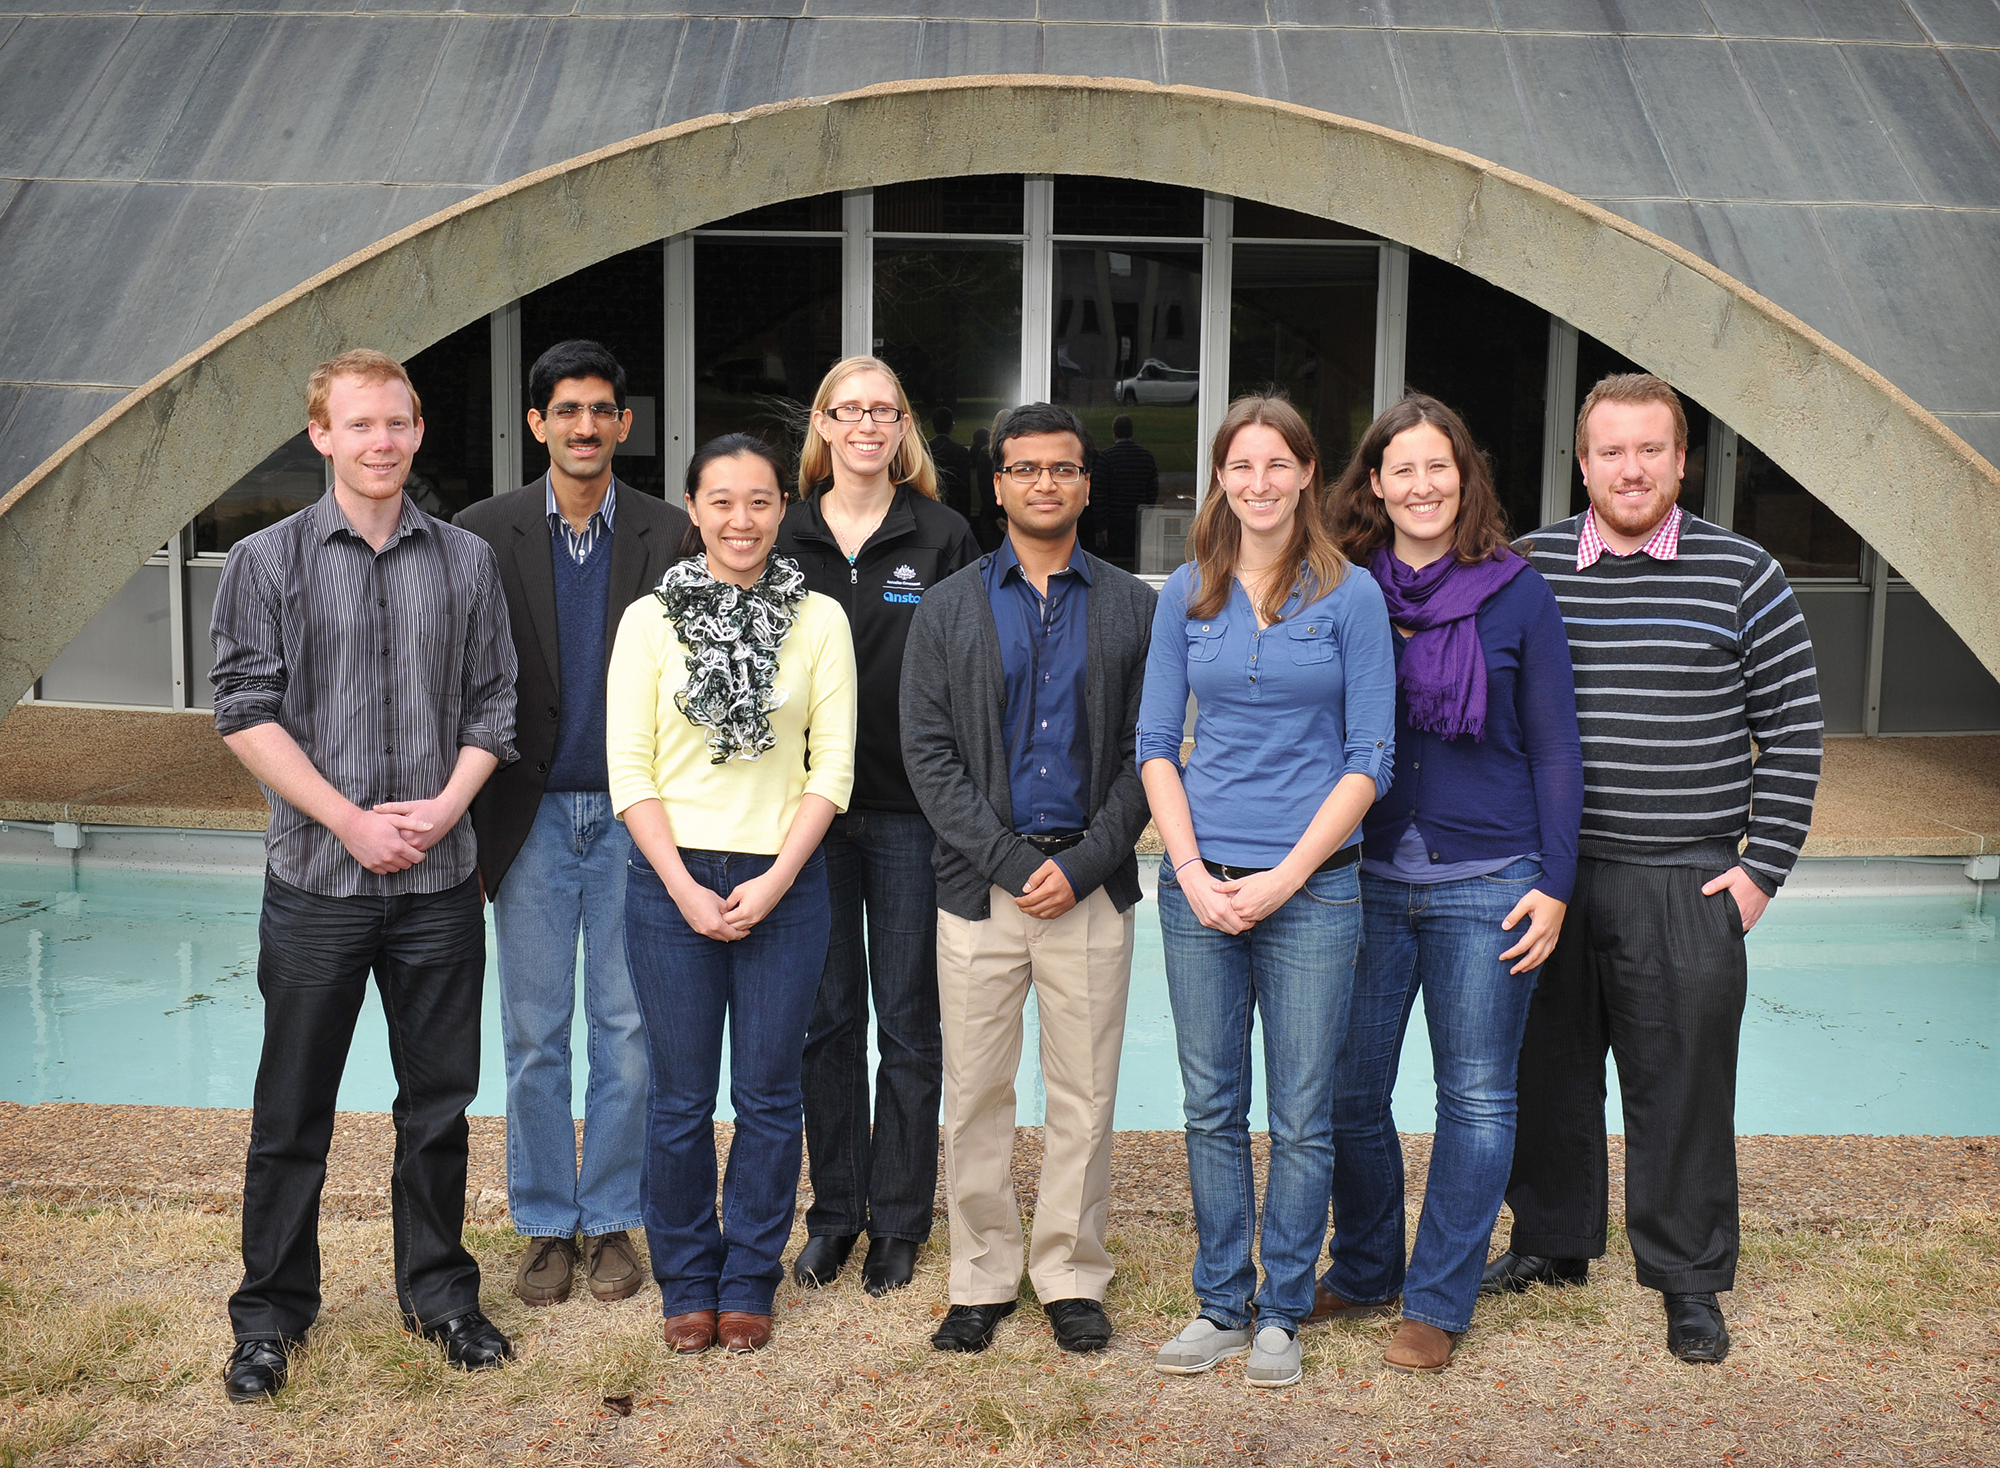 The eight 2013 recipients of the SIEF-Australian Academy of Science Fellowships to the Lindau Nobel Laureate Meetings stand in front of the Shine Dome in Canberra.